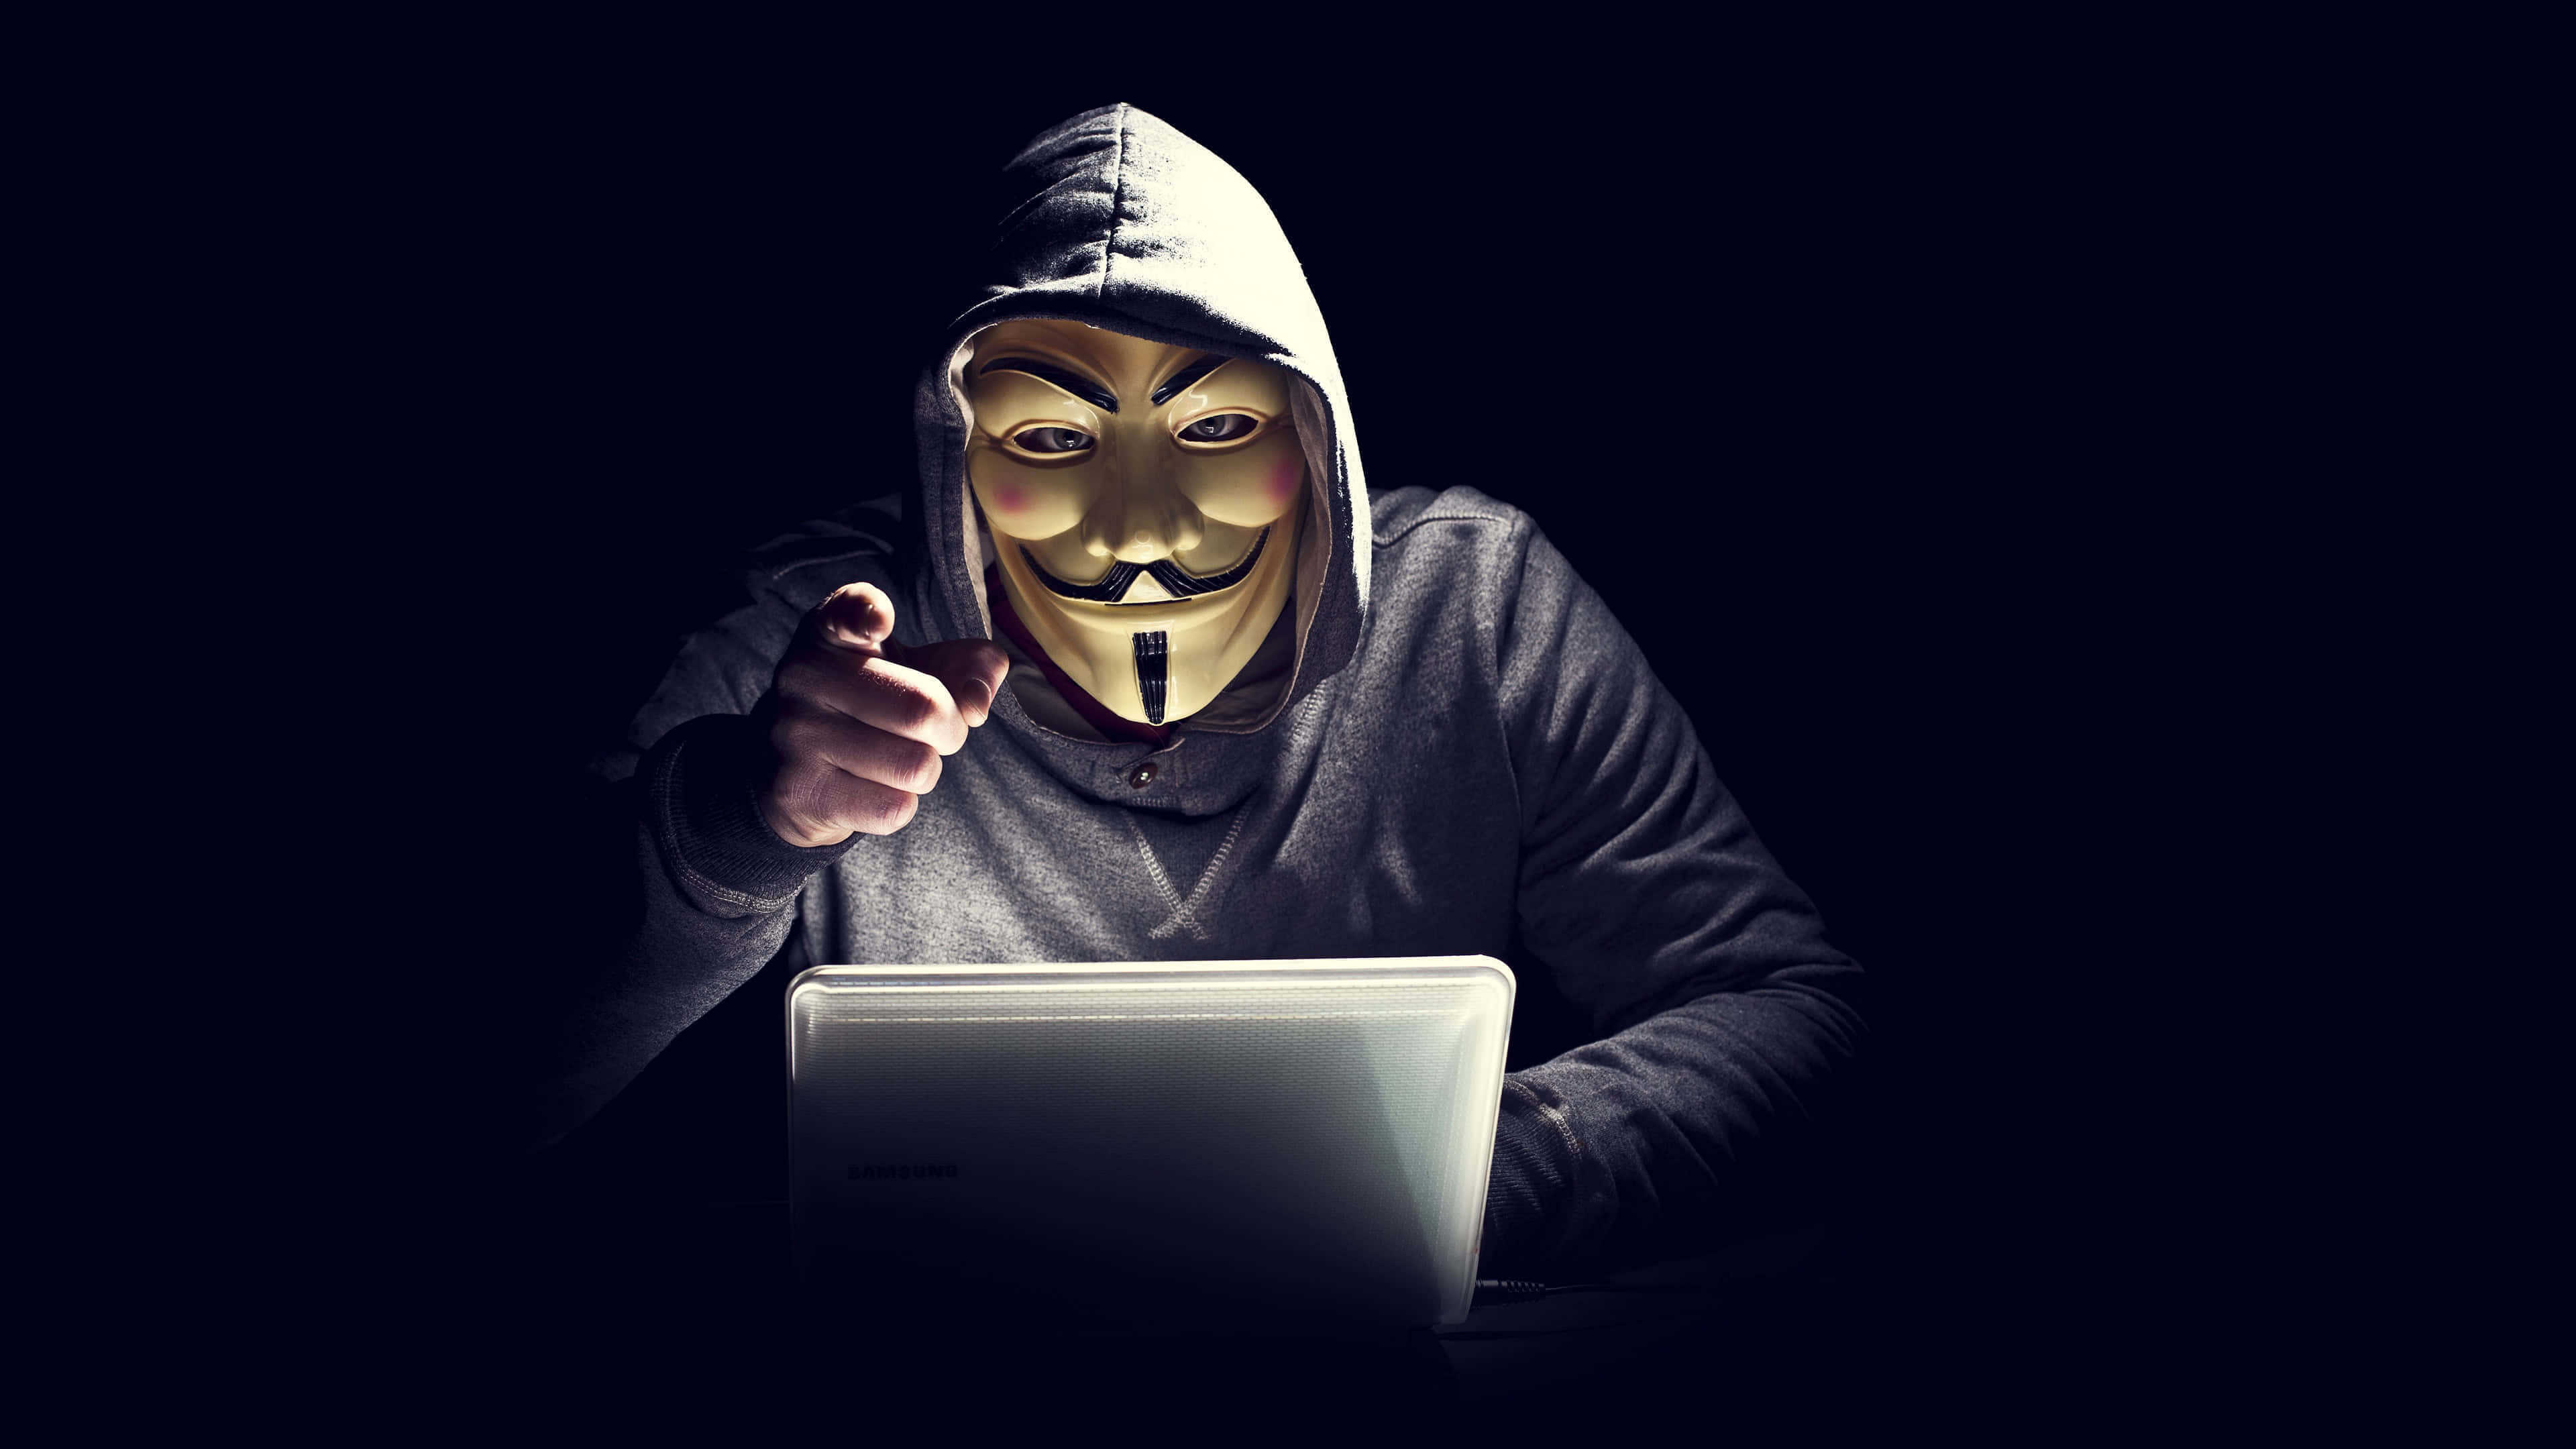 Anonymous Hacker Uhd 4k Wallpaper Pixelz